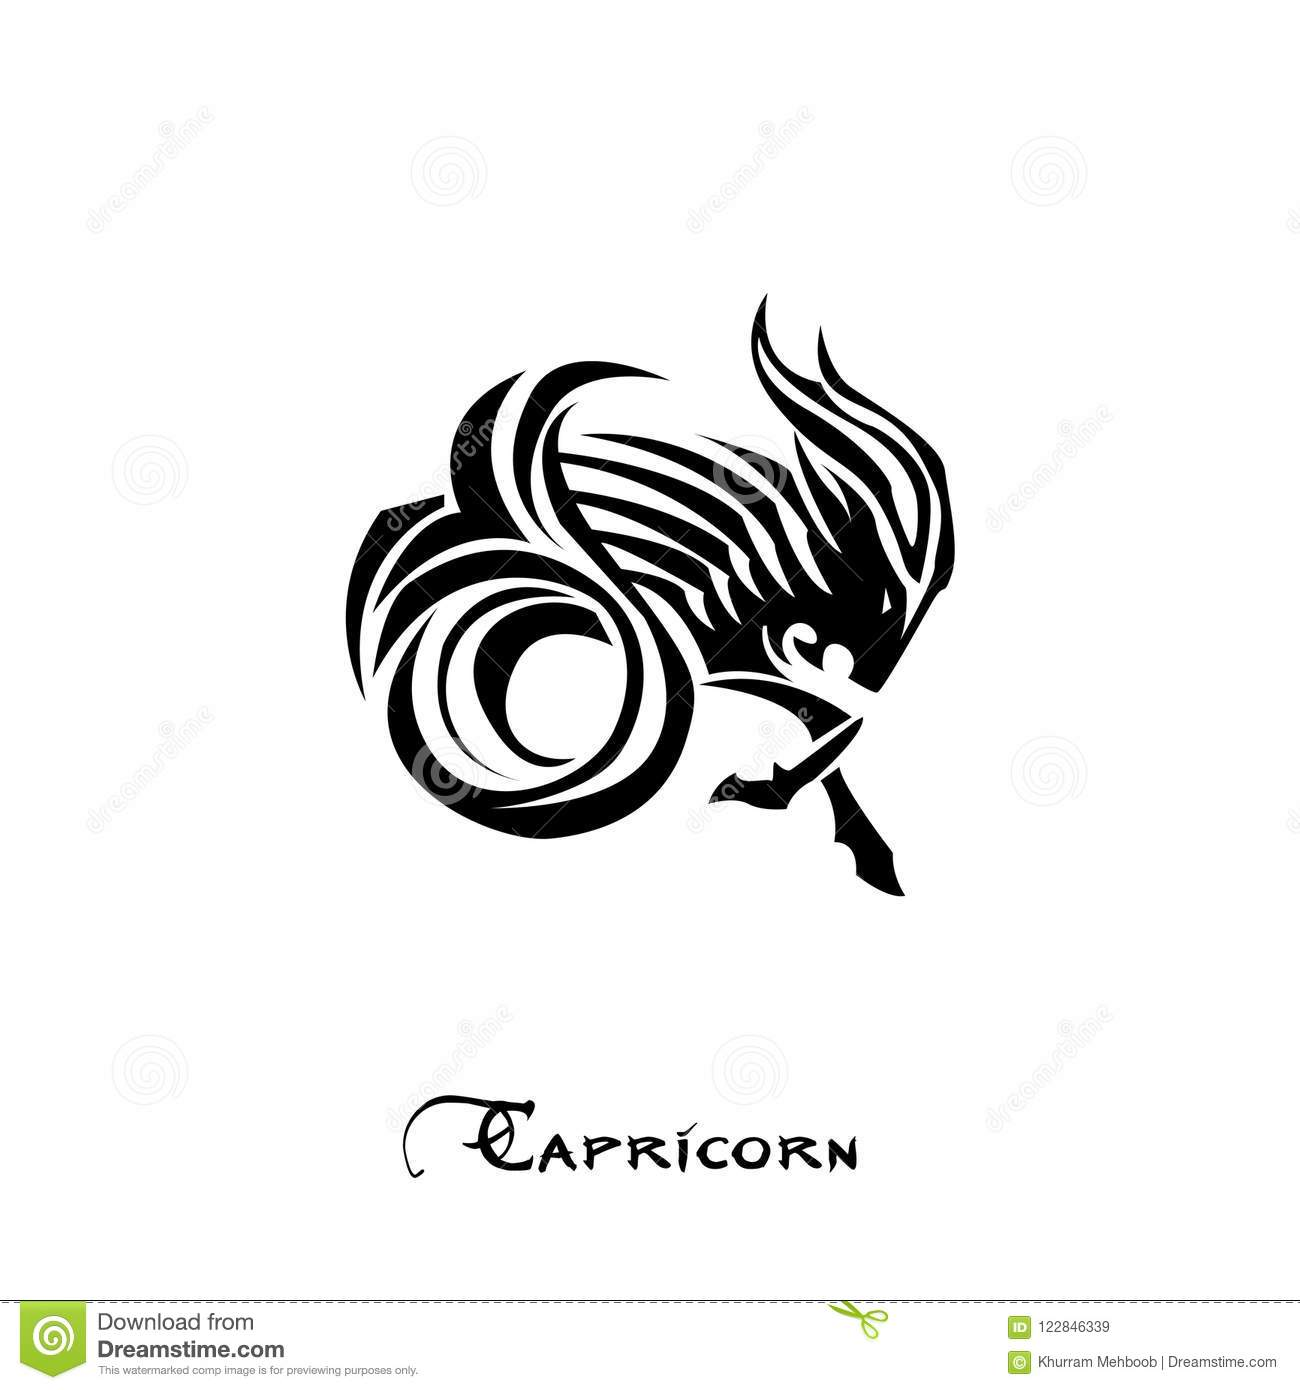 Capricorn Zodiac Sign Tattoo Style Stock Vector Illustration Of